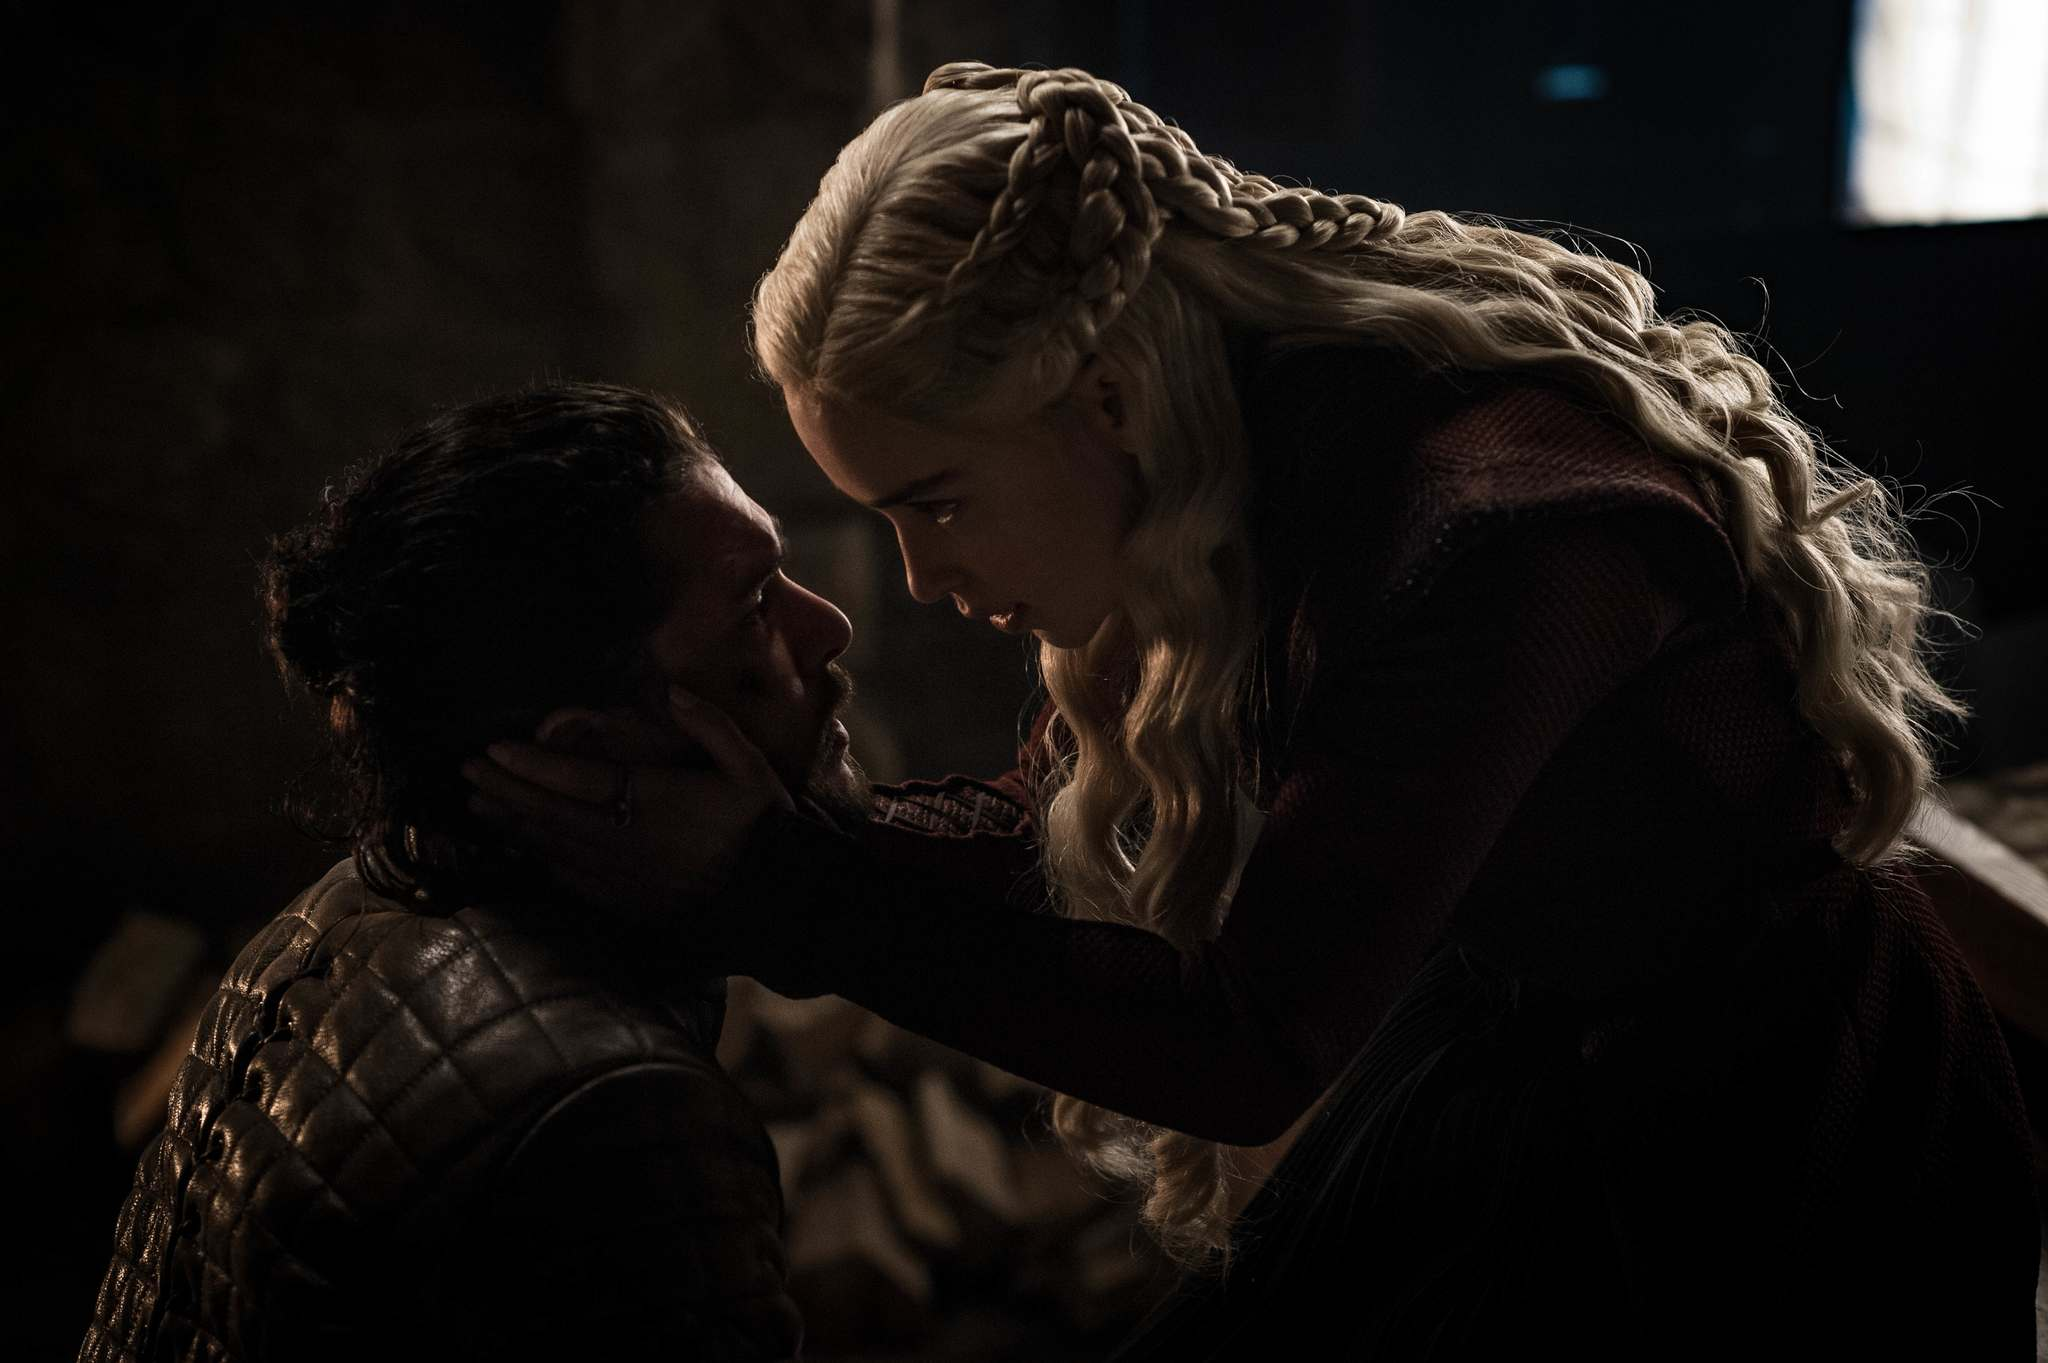 Daenerys' claims to the Iron Throne are weakened when she learns Jon Snow (Kit Harington) shares her royal Targaryen blood. (Helen Sloan / HBO)